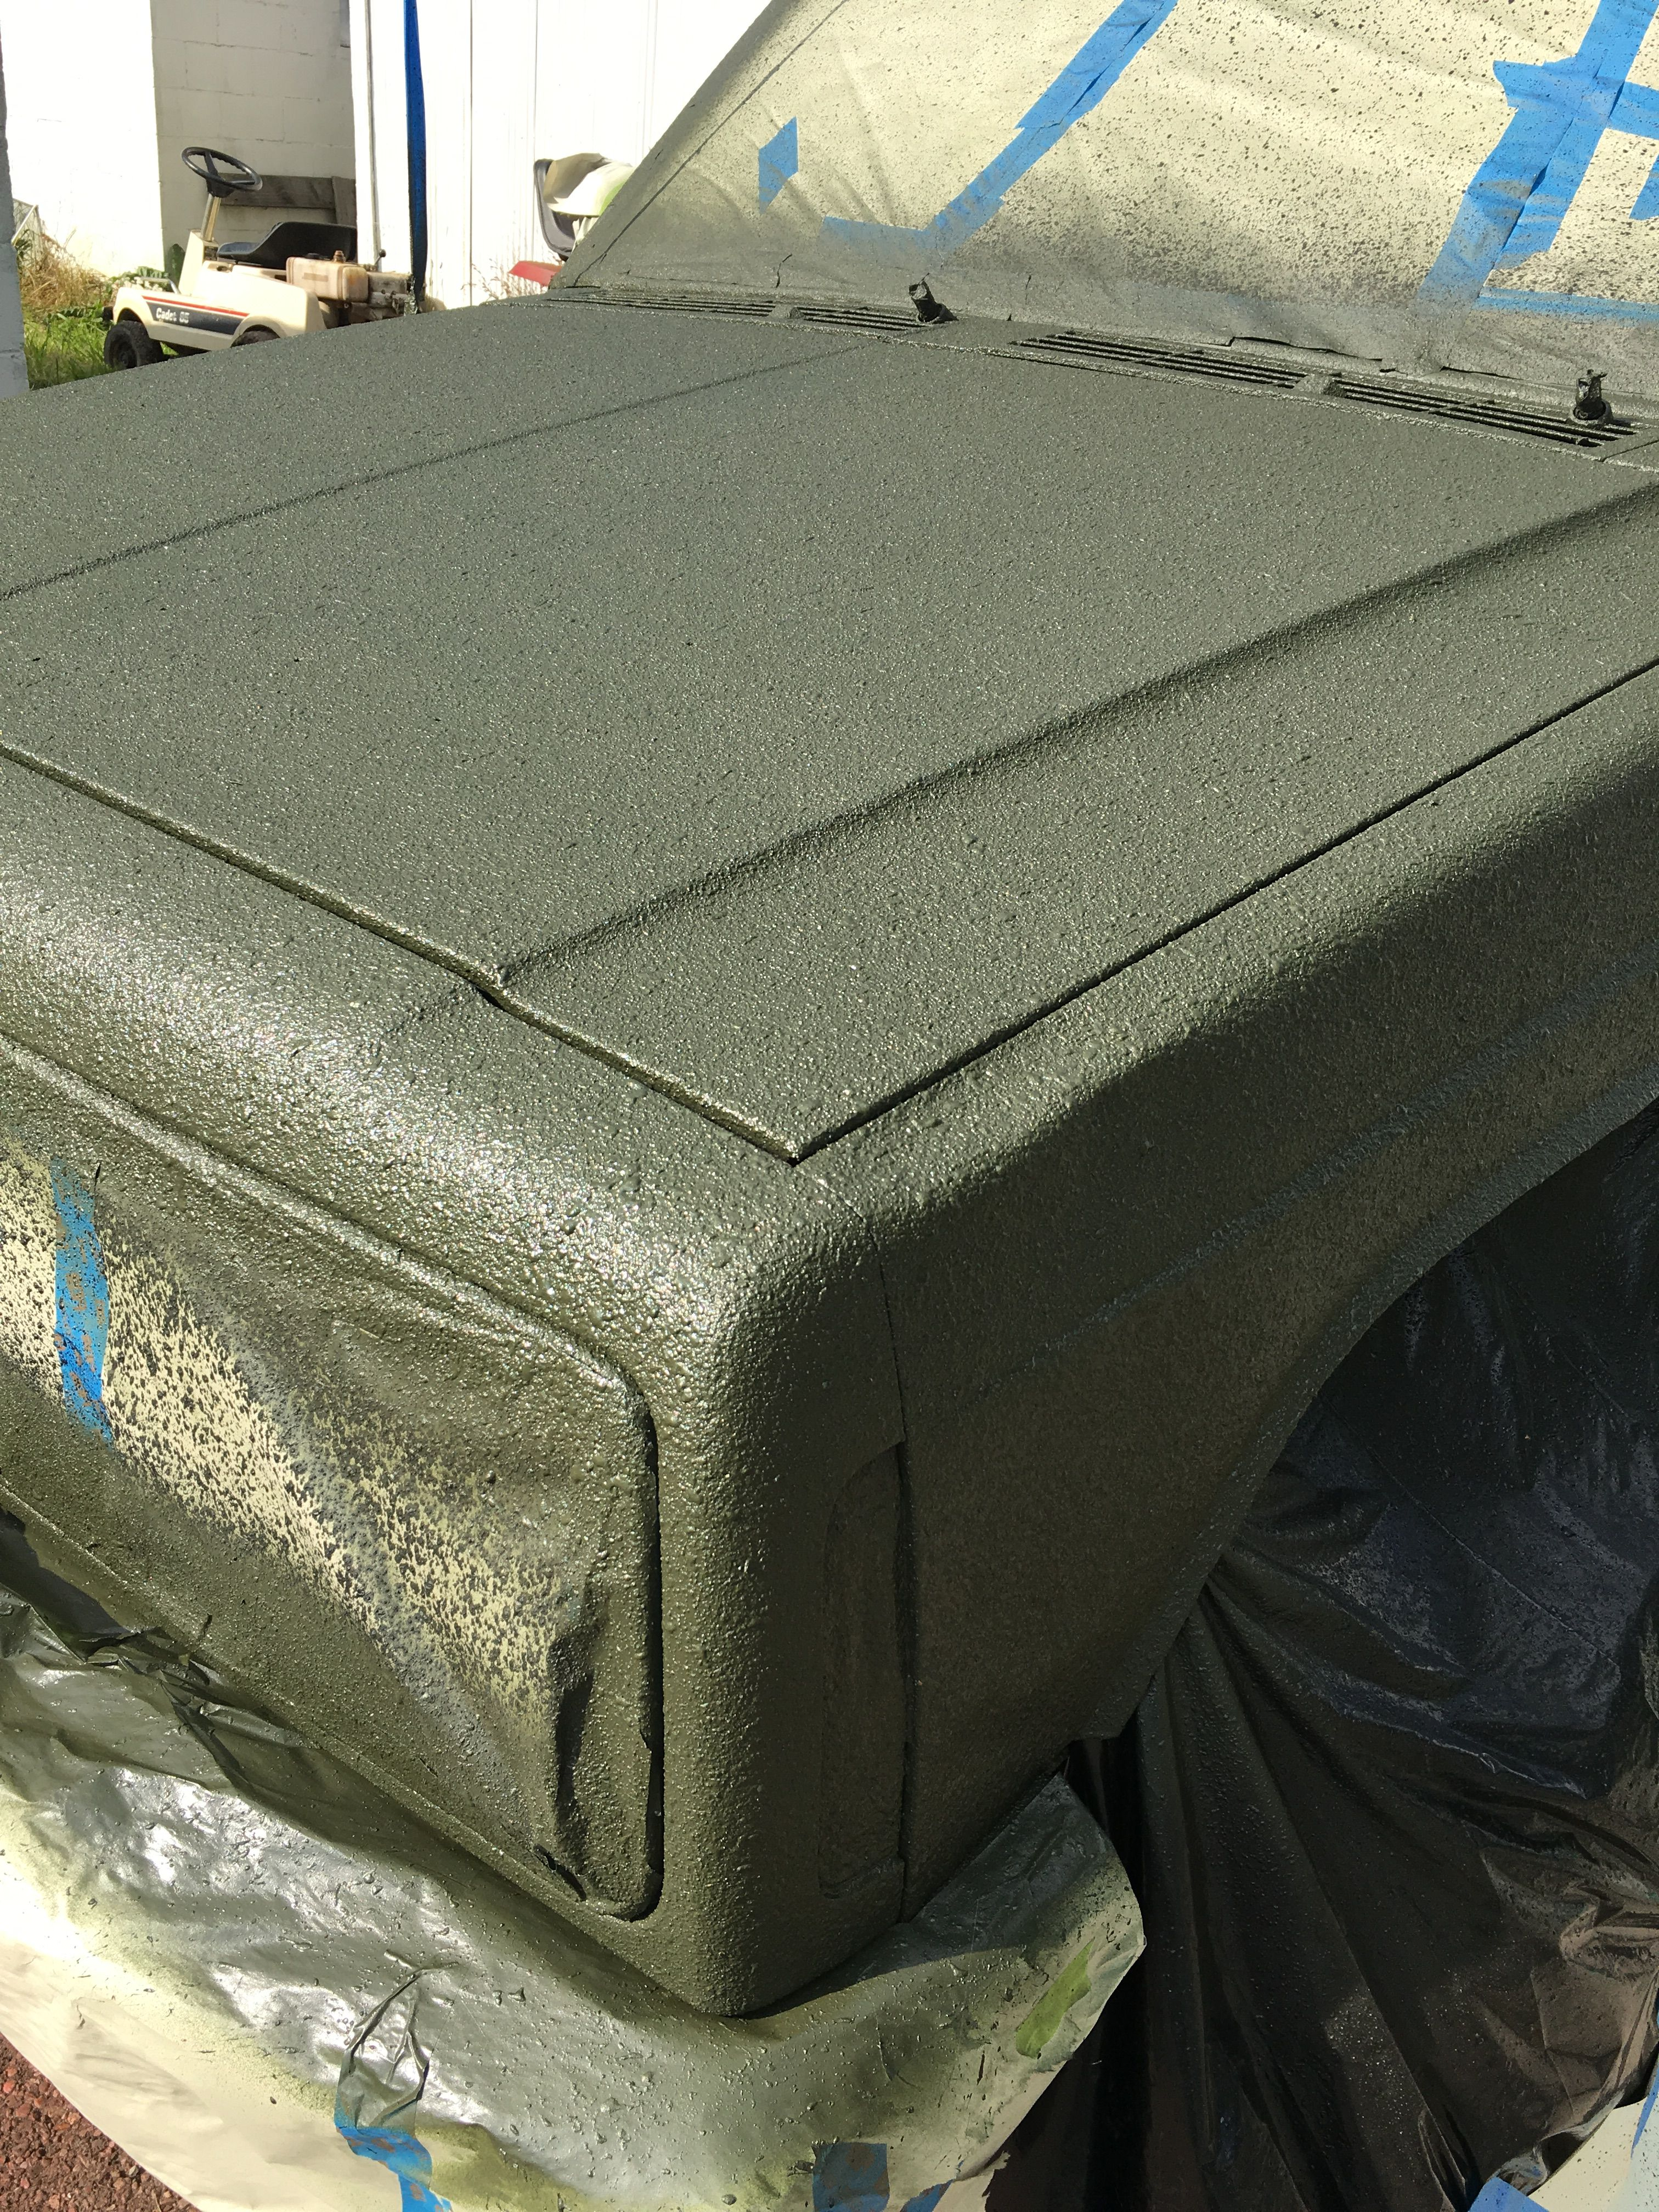 Green Bed Liner : green, liner, Paint, After, Liner,, Quarts, Hunter, Green, Gloss, Quart, Primer,, Mixed, Thinned, Liner, Paint,, Bedliner